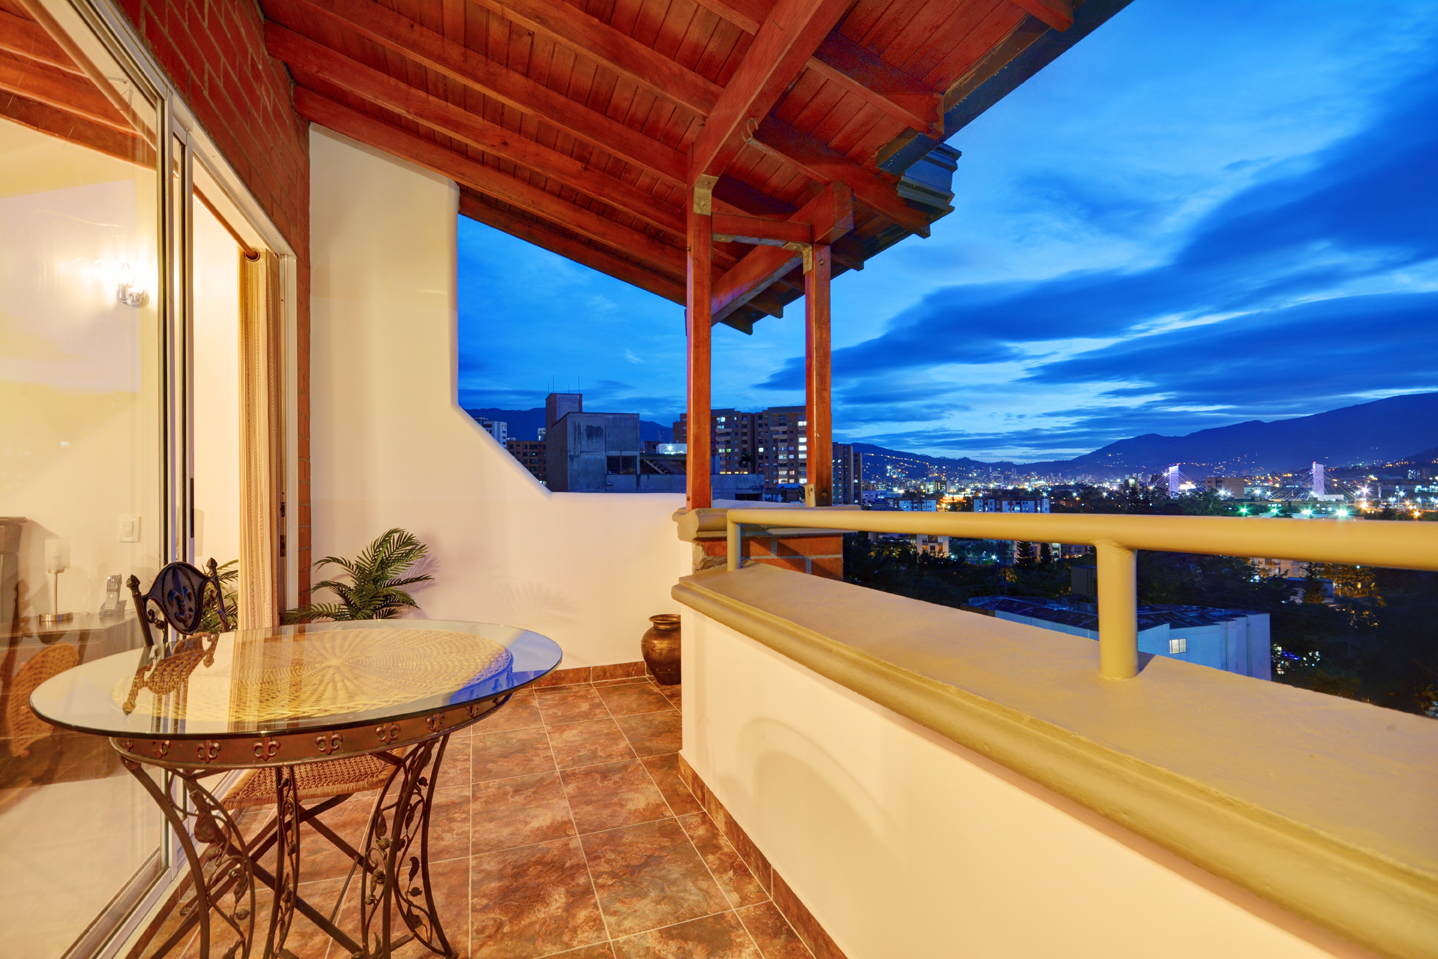 Beautiful outdoor balcony with fantastic view in Medellin apartment for rent